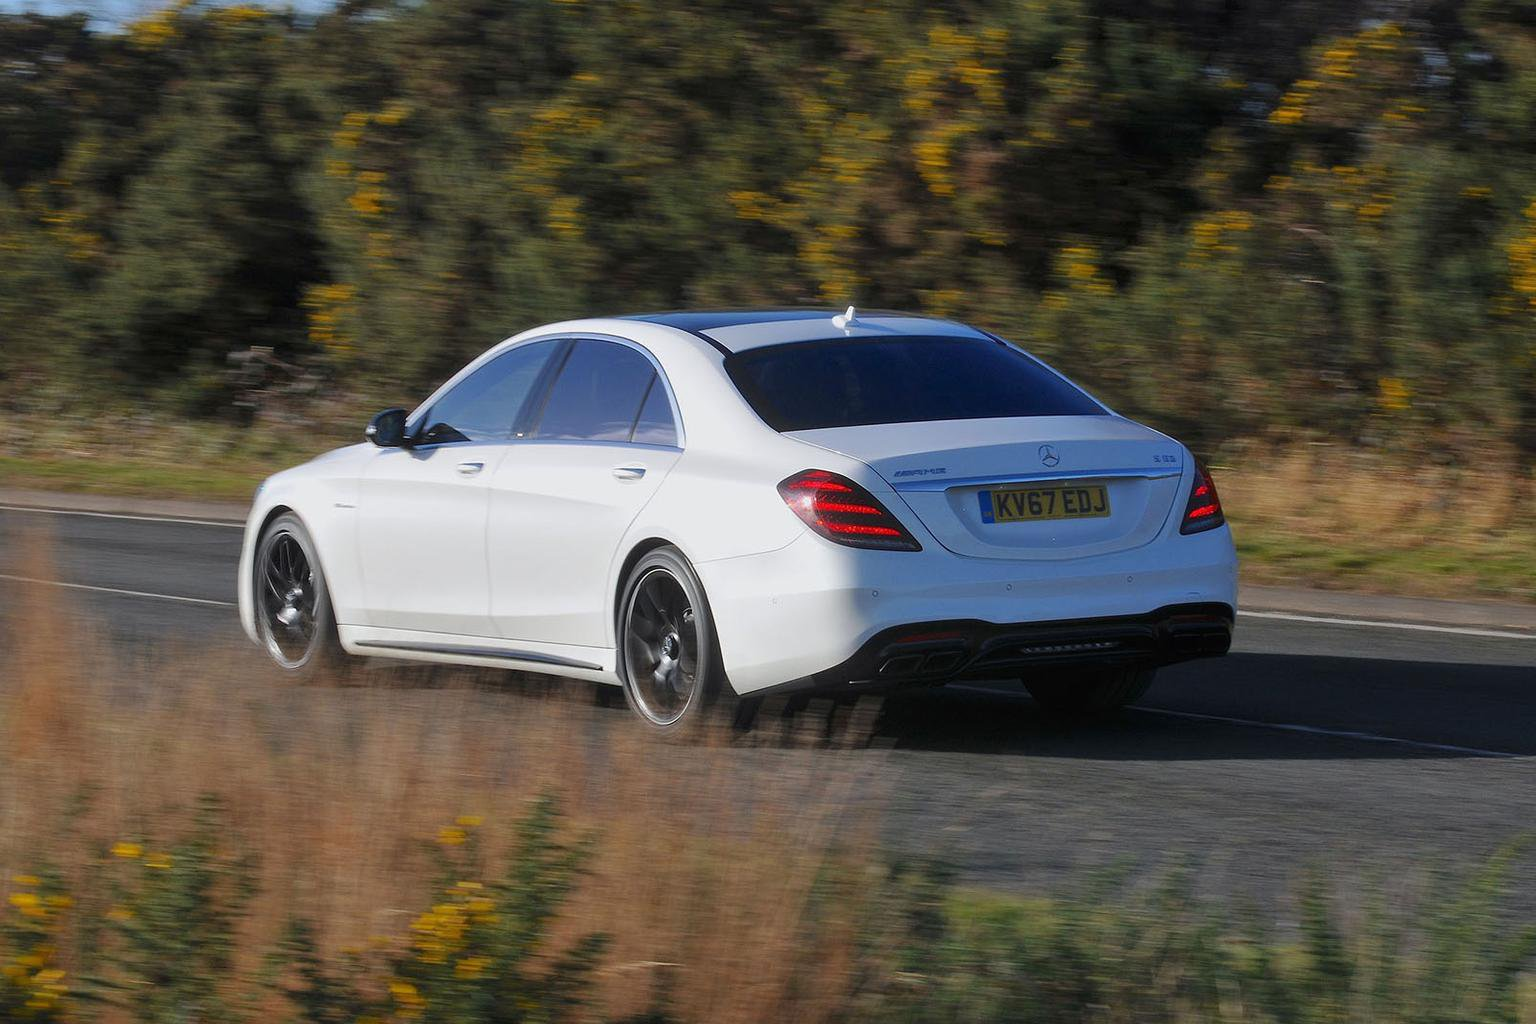 2017 Mercedes-AMG S63 review - price, specs and release date